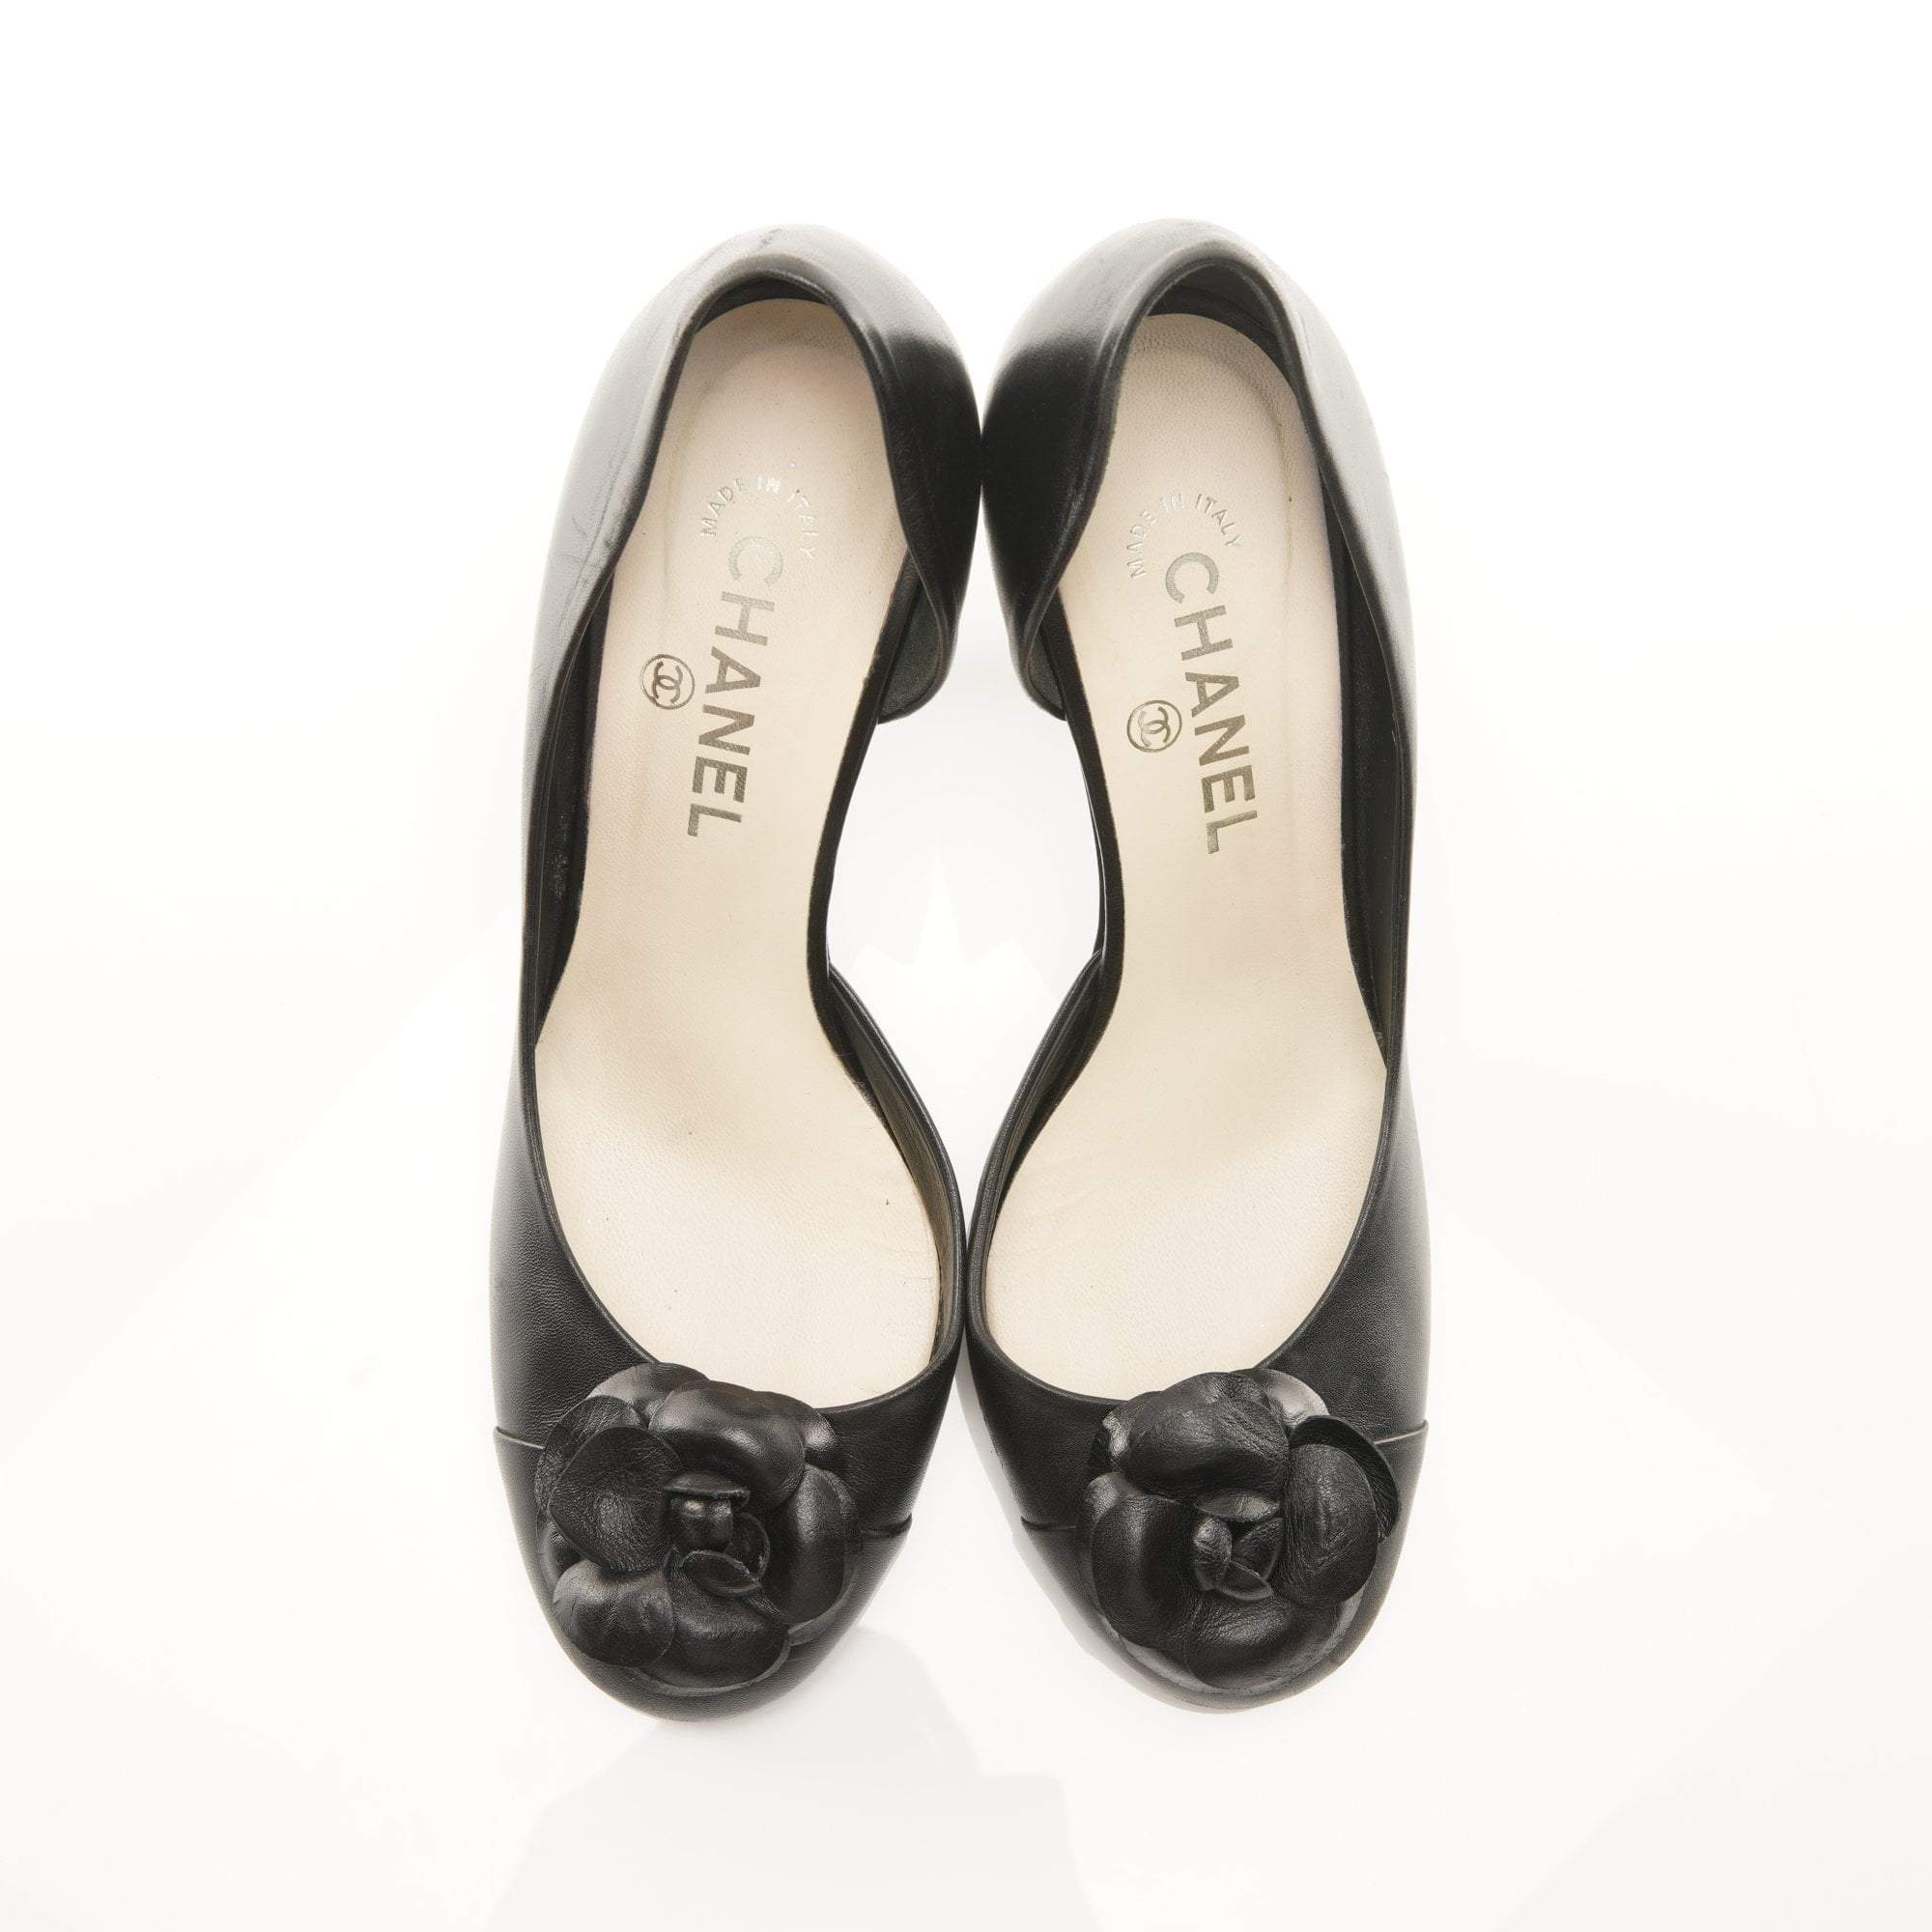 Chanel Camelia Cutout Pumps